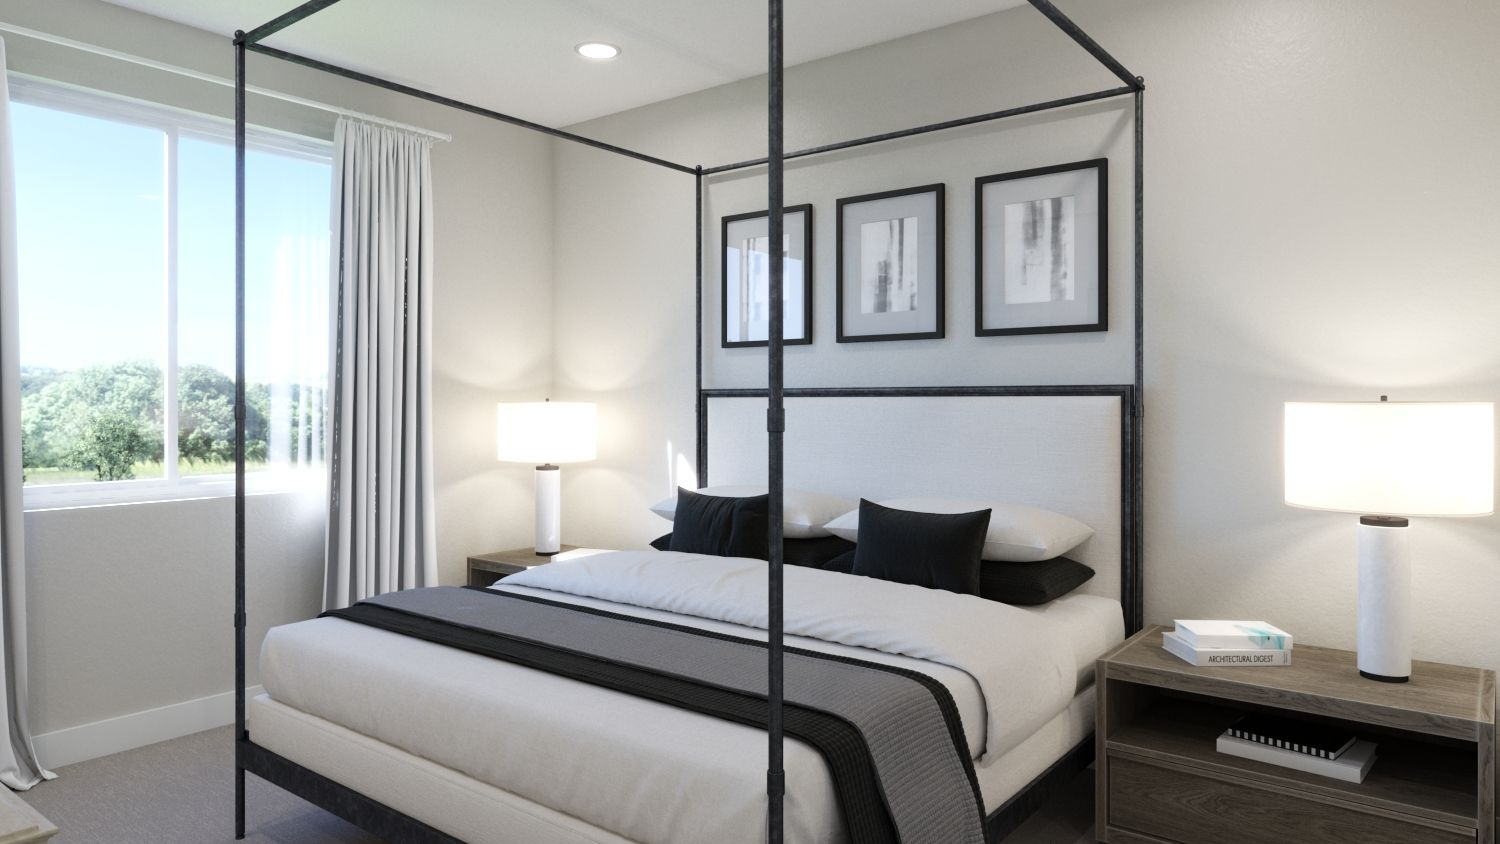 Bedroom featured in the Plan 3A By Melia in Orange County, CA